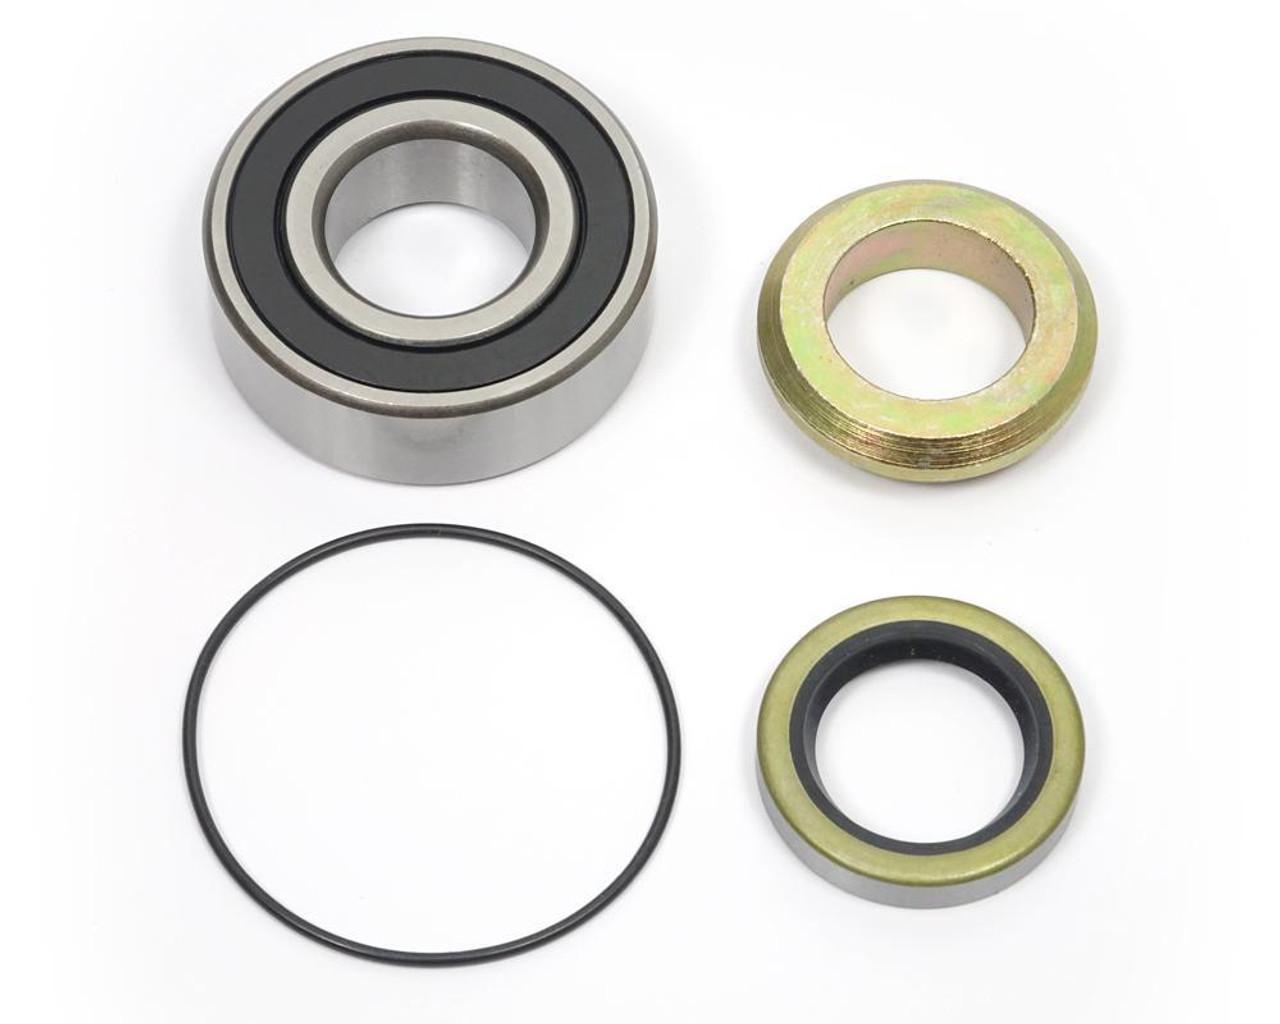 Rear Axle Shaft Bearing kit - SAVE over 10%